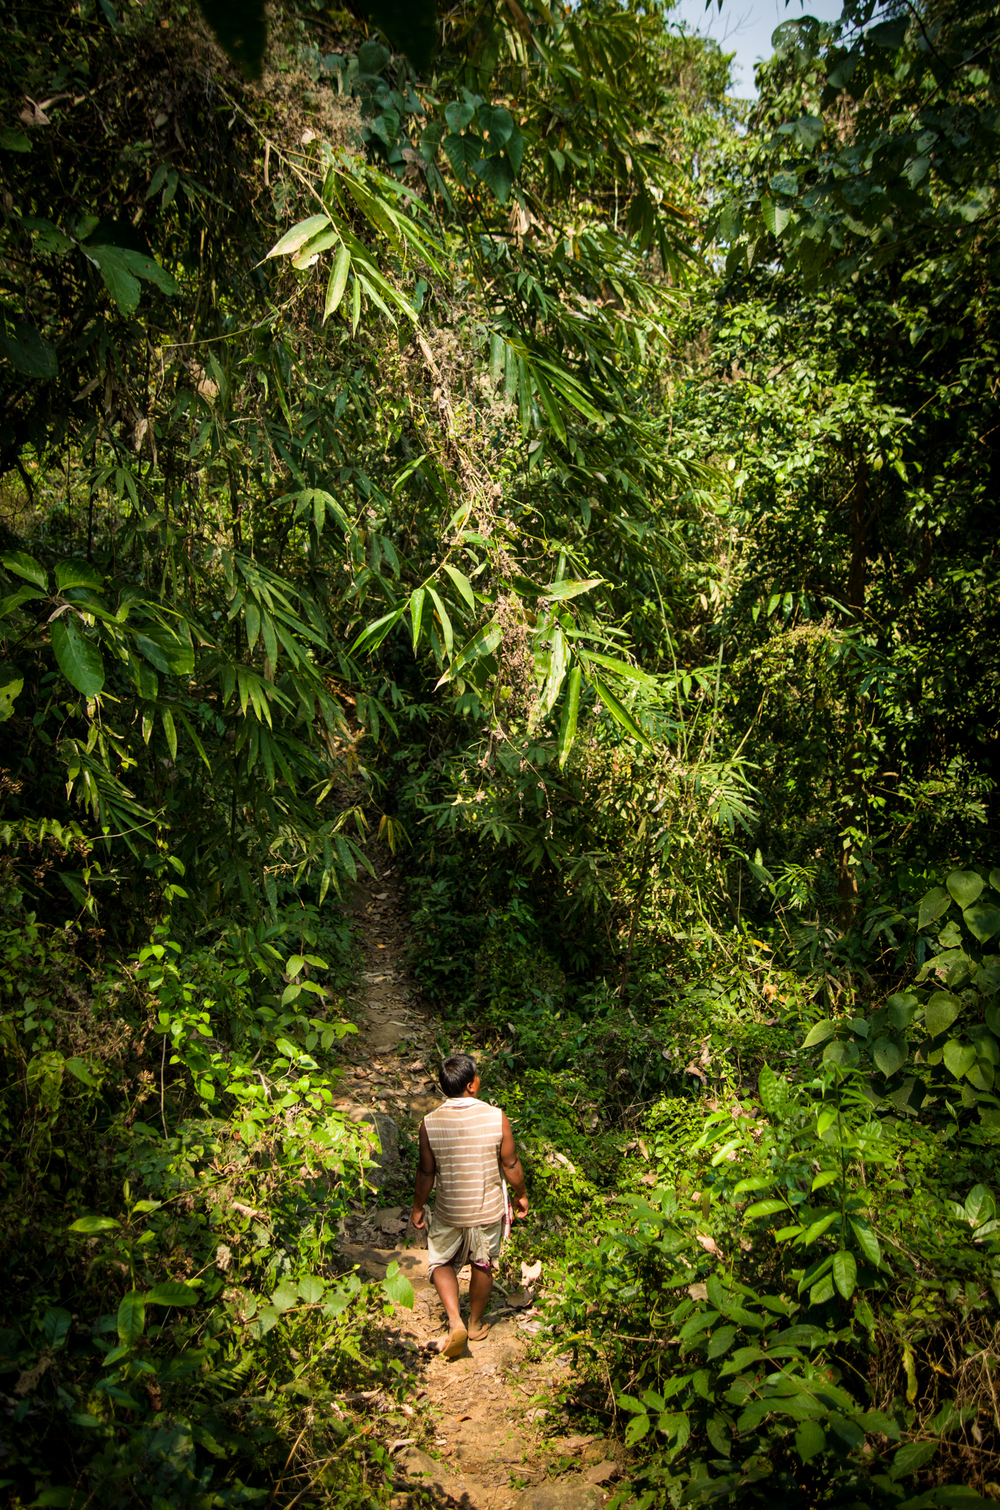 Balram Rasha, a local tribesman from Zaramukhuriya, guides the team through the forests in Chandubi, Assam.